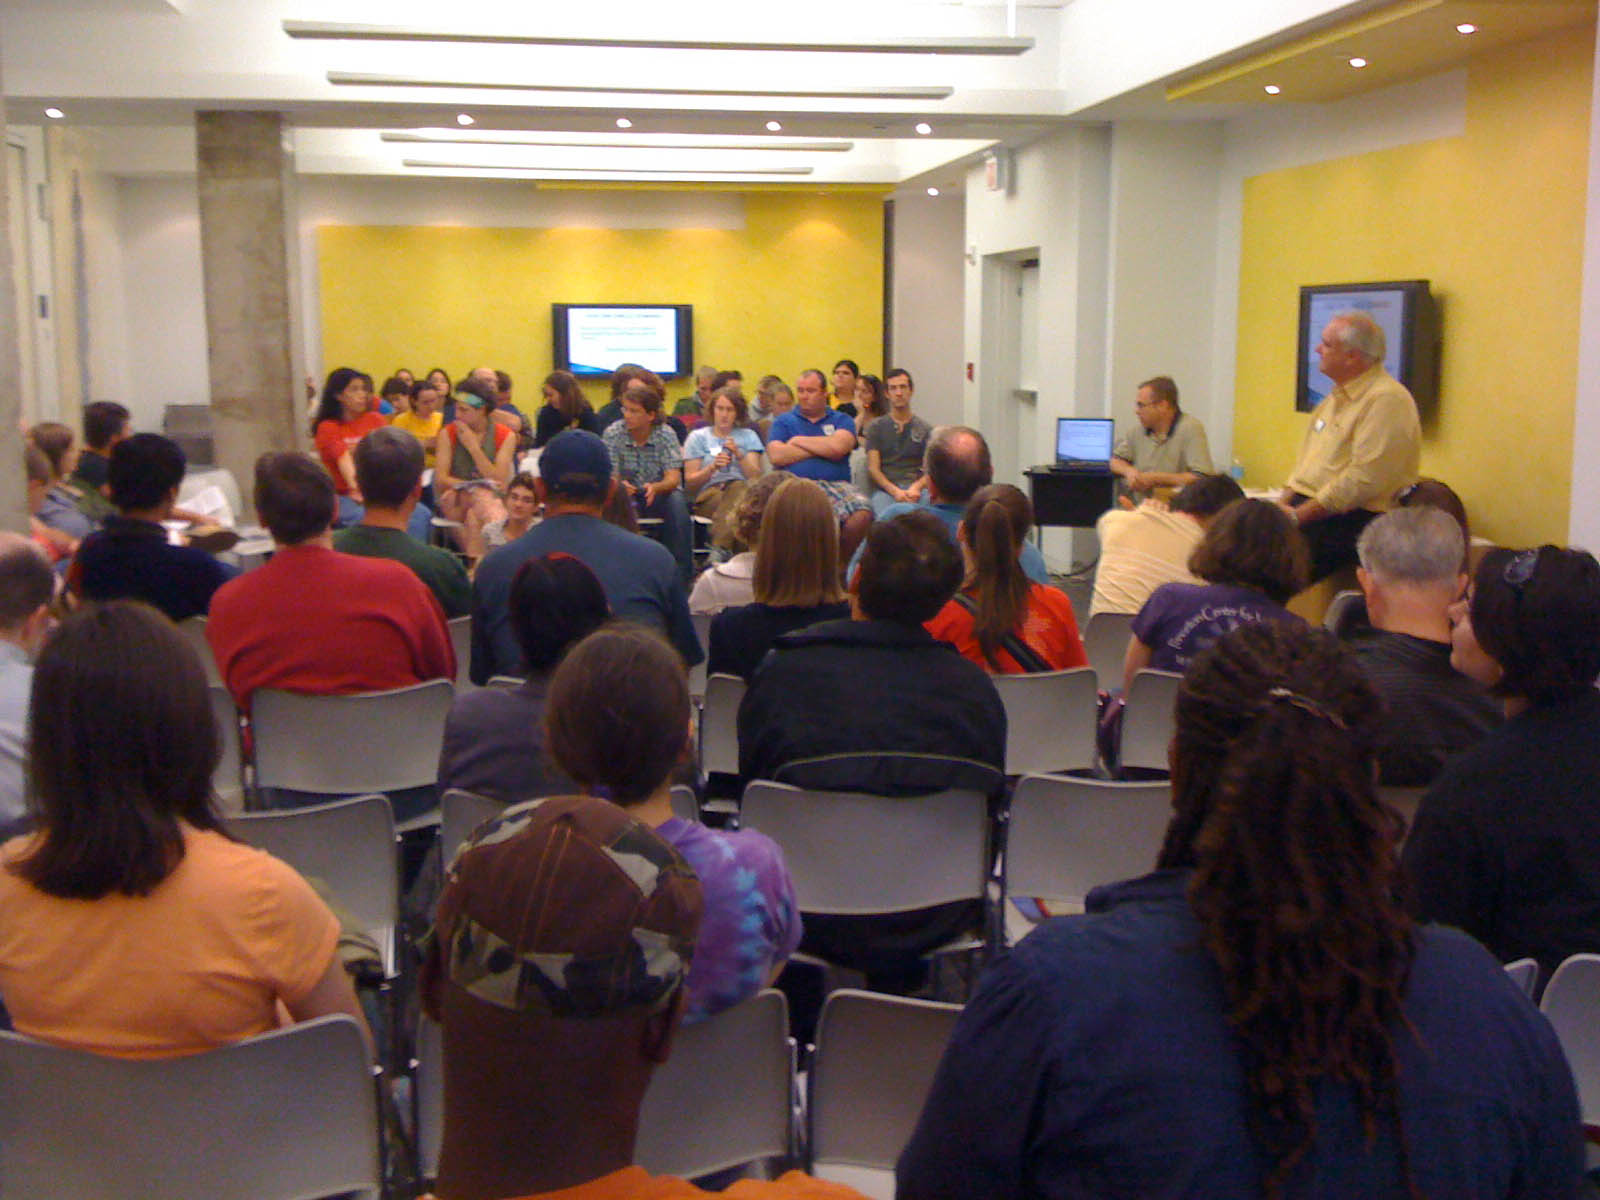 Bill Carpenter and Chris Hubble Train National Equality March Activists in the Philosophy and Practice of Nonviolent Strategies.